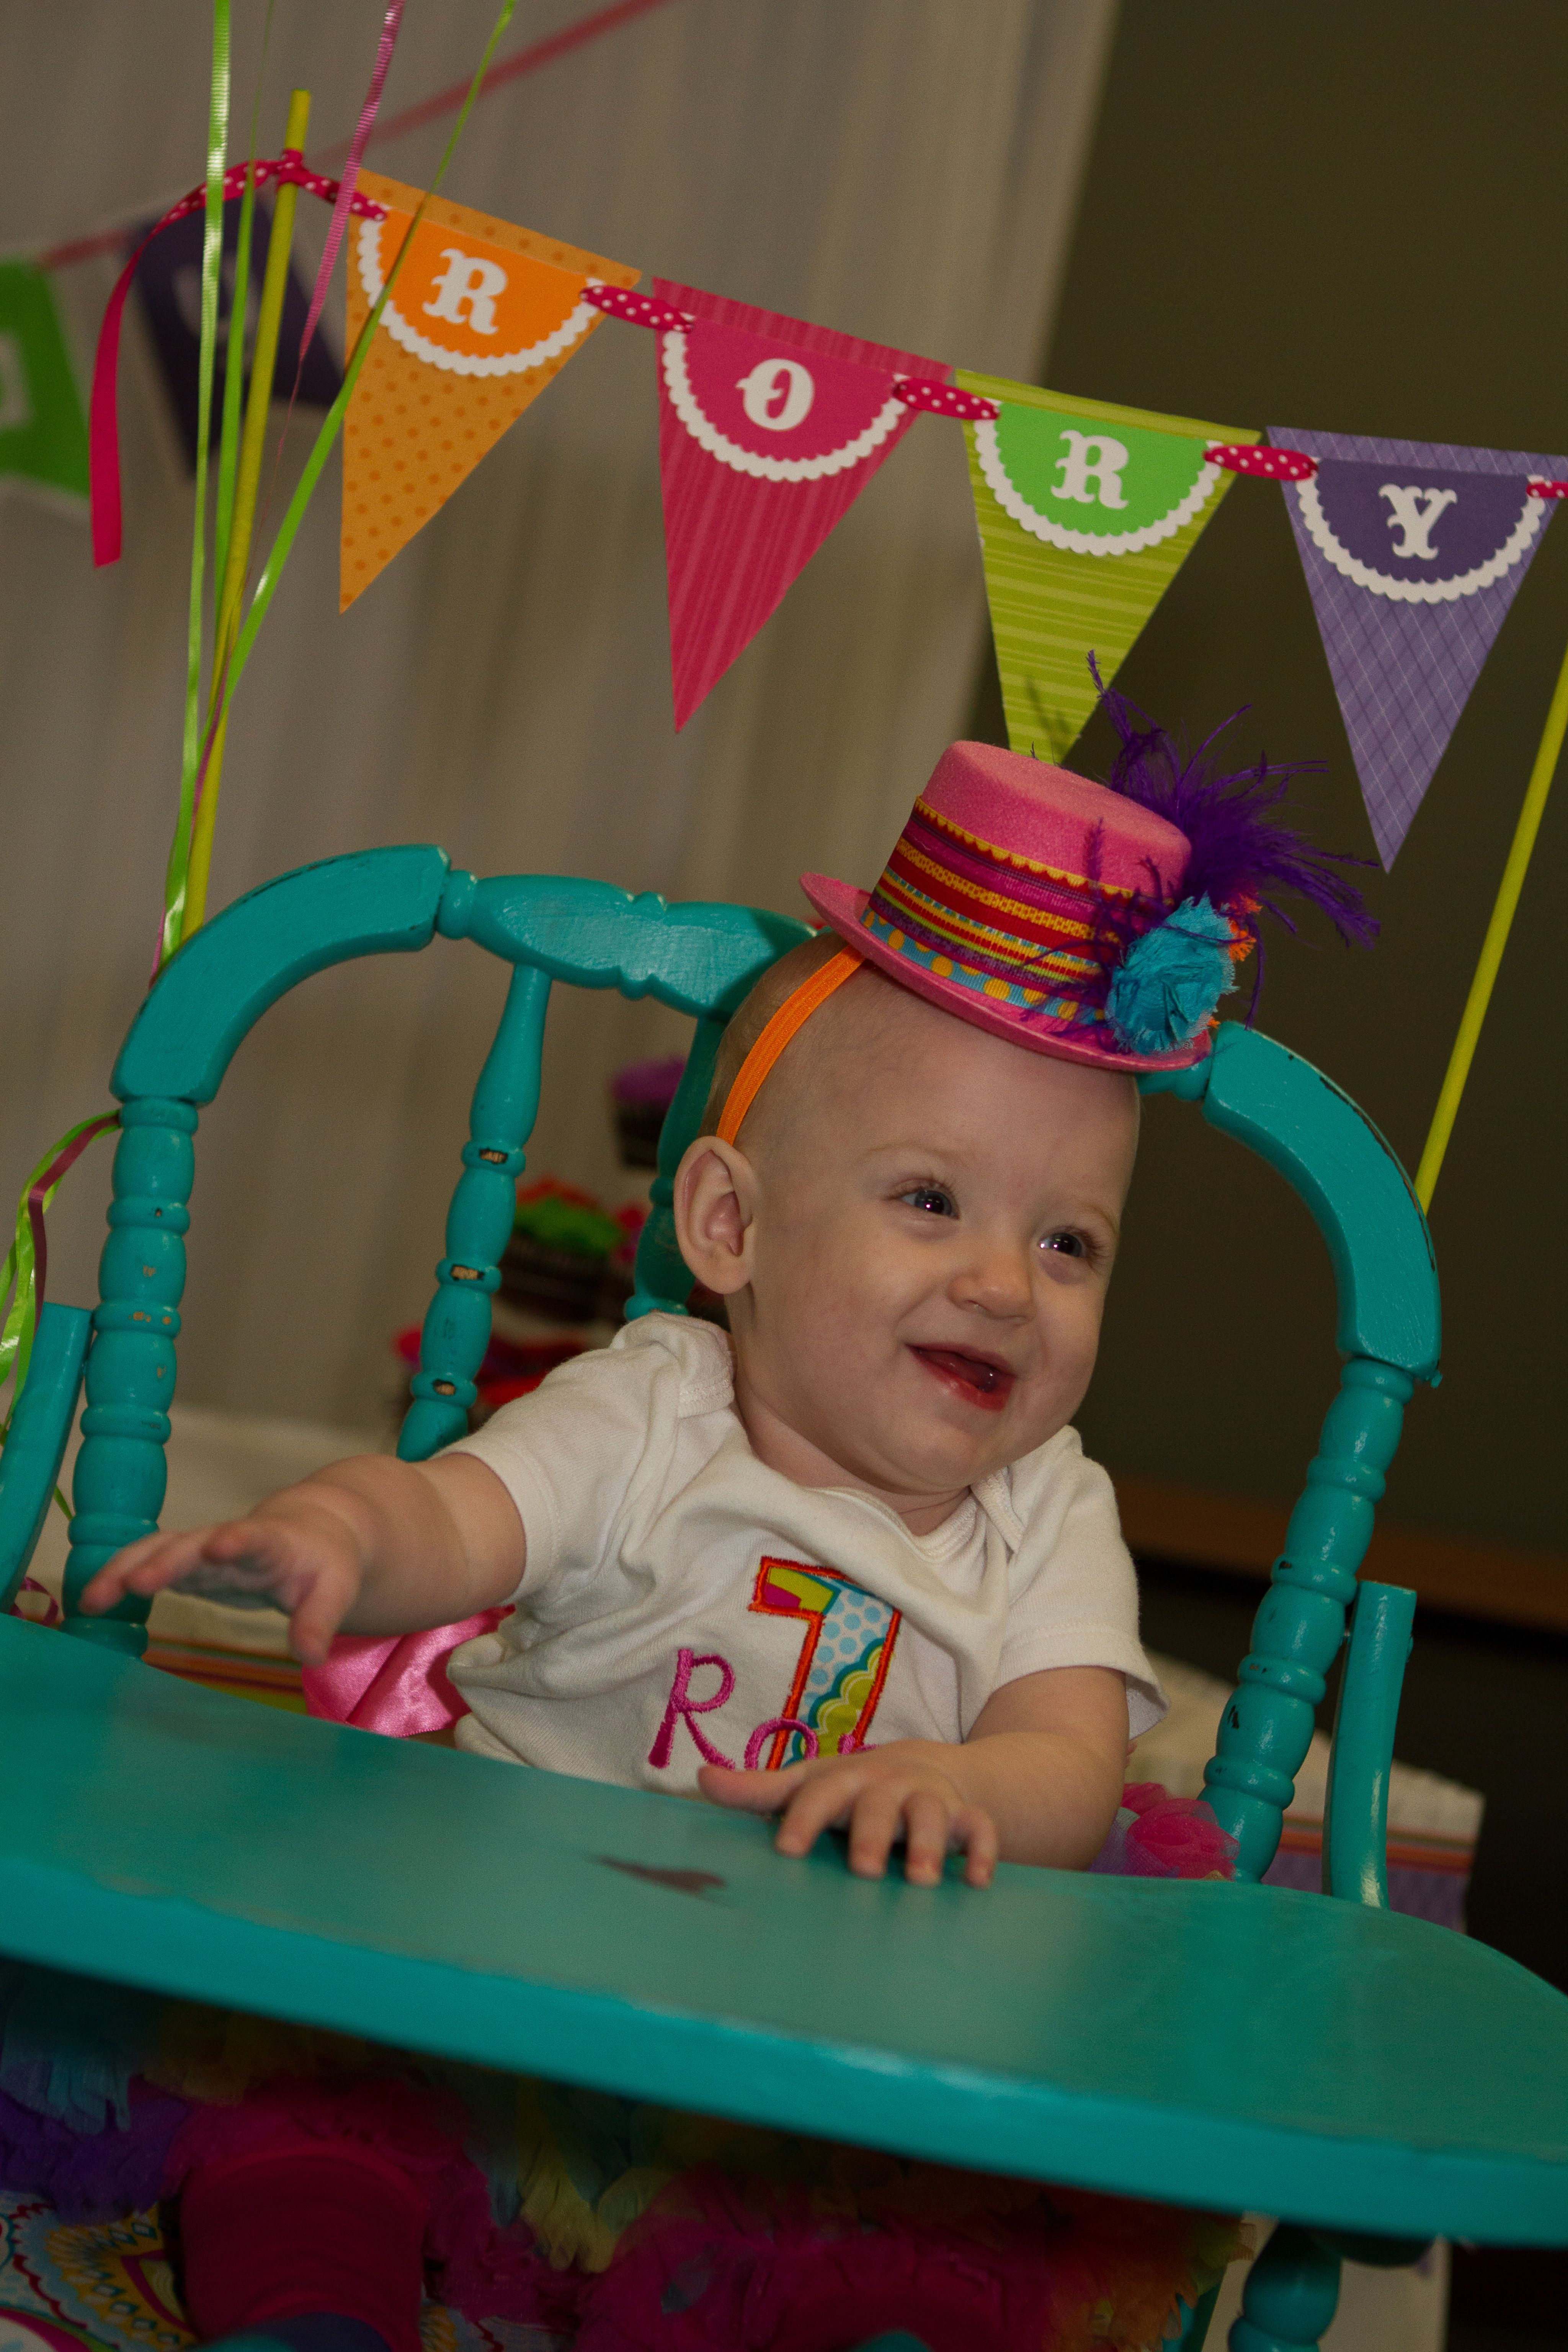 first high chair invented the company i refinished an old wooden highchair and made banner